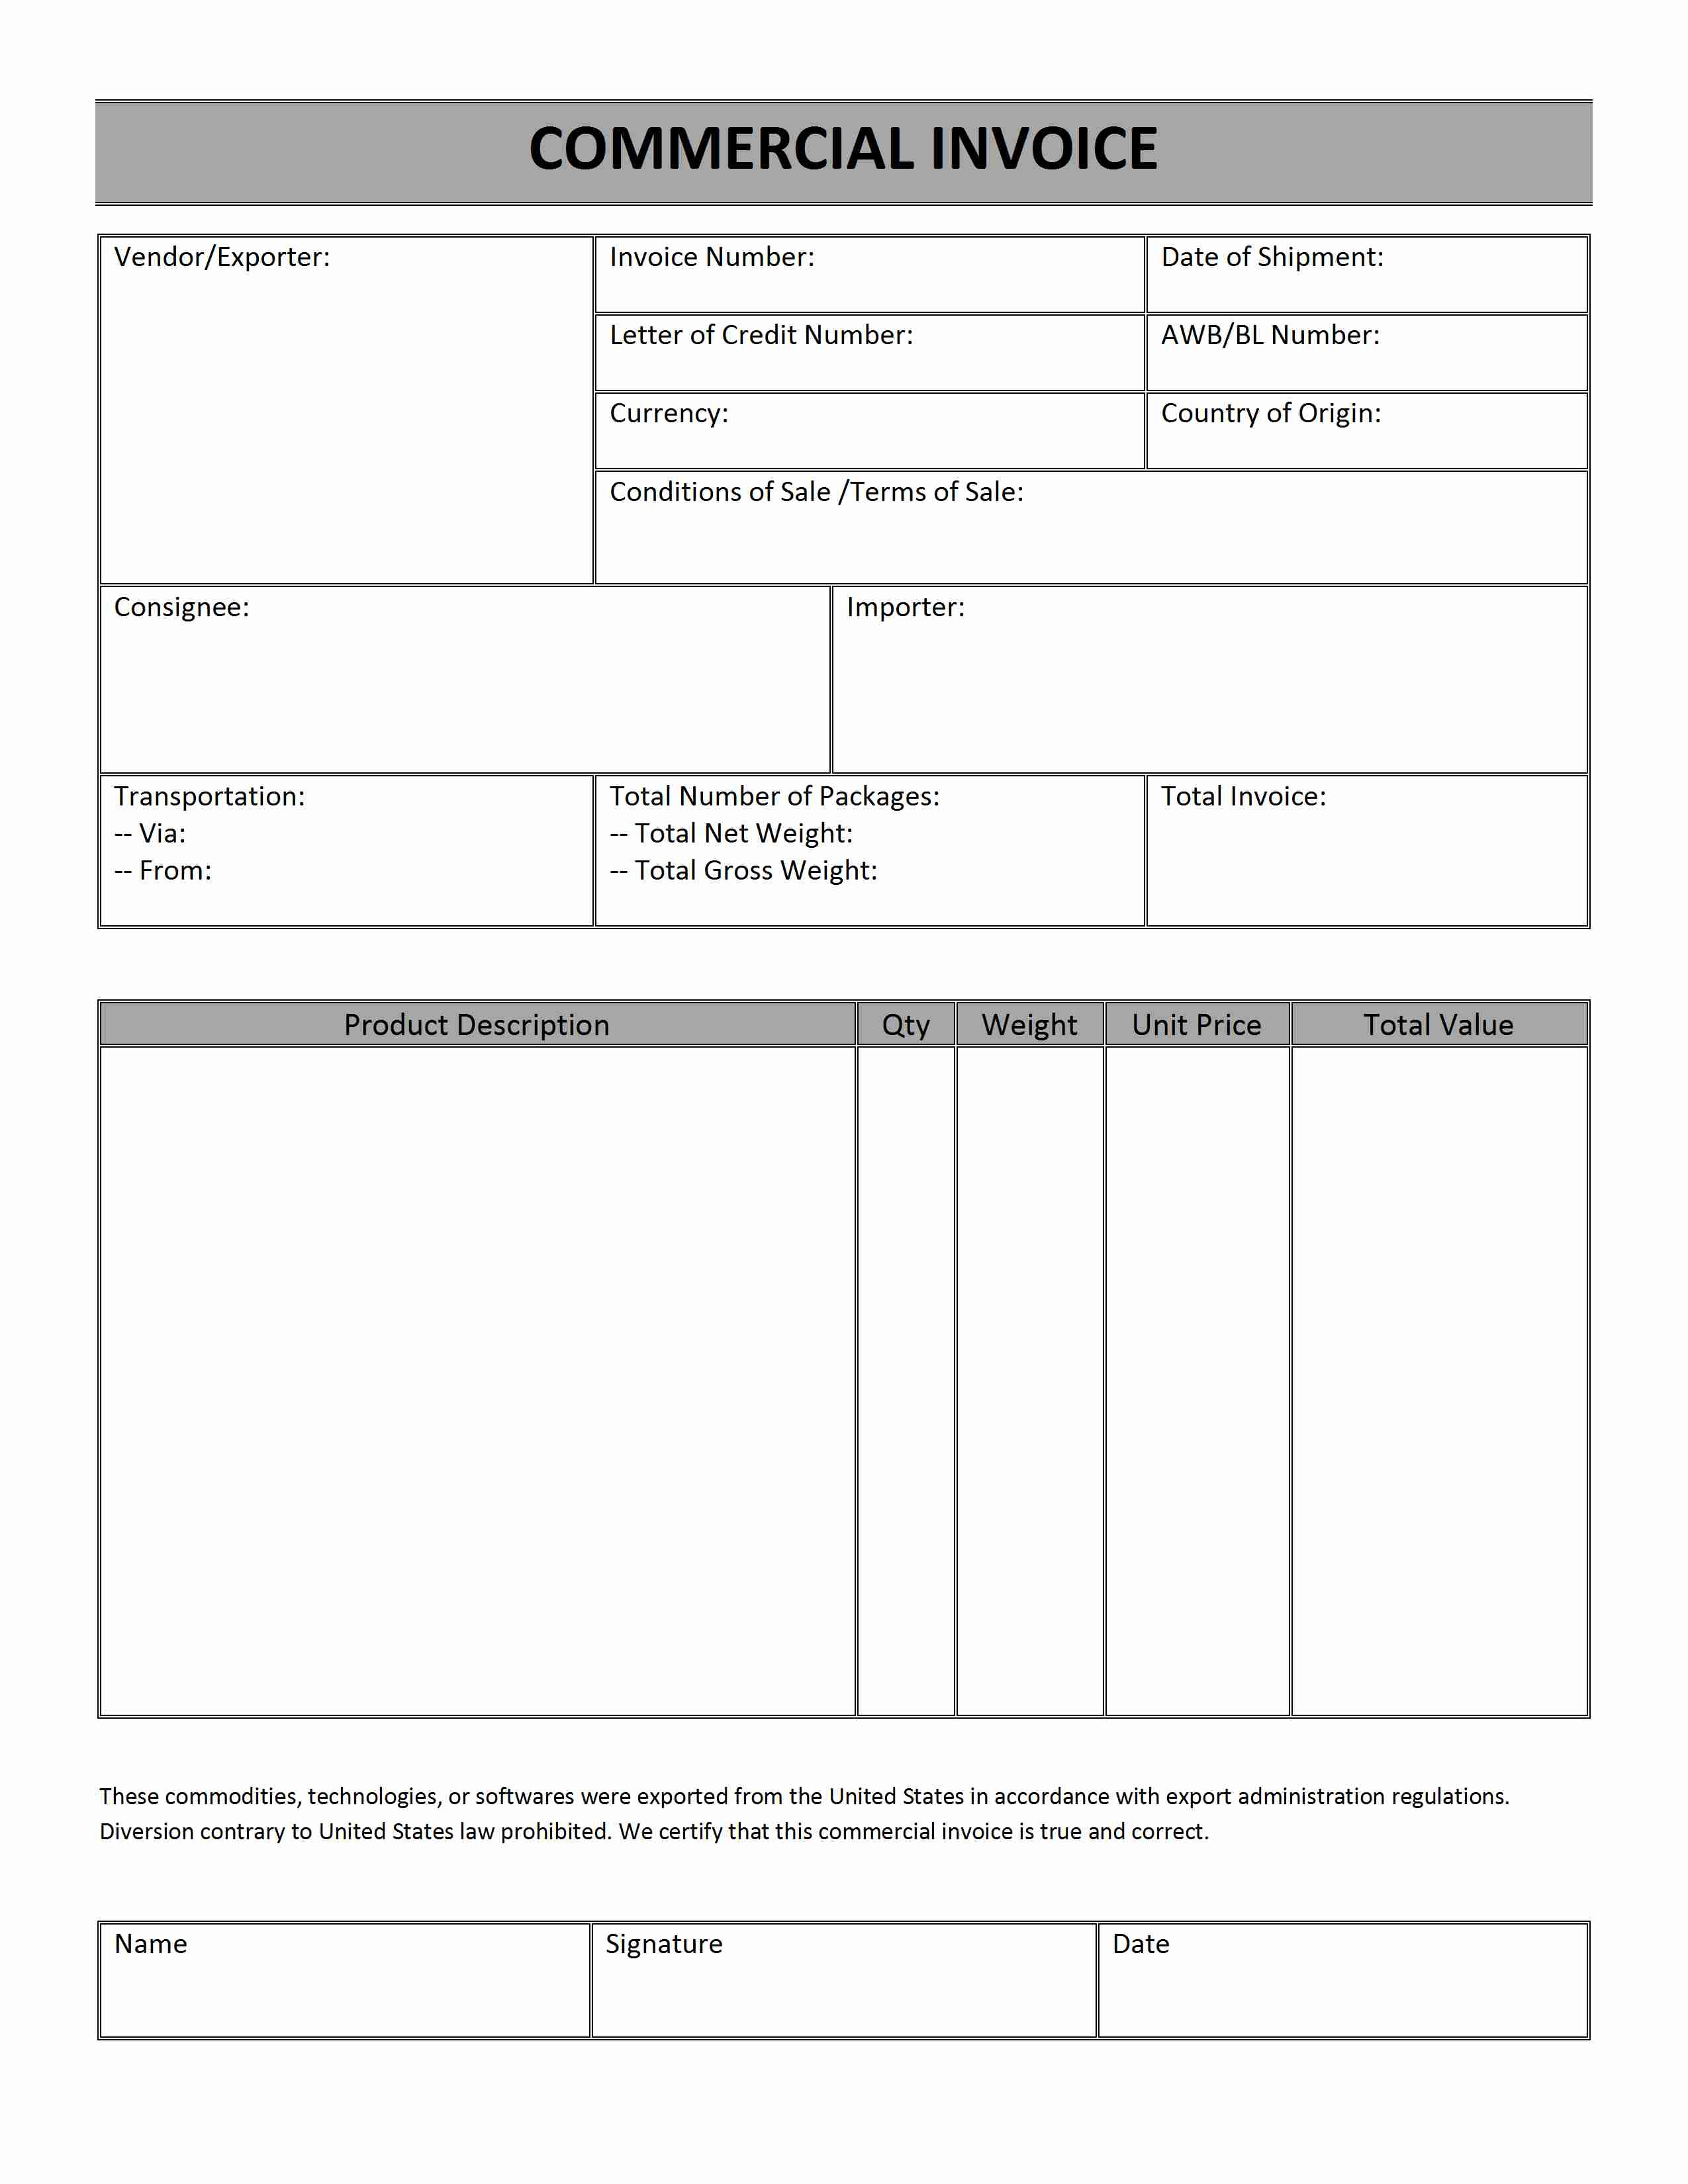 Conservativereviewus  Unique Printable Sales Invoice Simple Invoice Form Free Invoice  With Engaging Printable Receipt Free  Free Printable Raffle Tickets  Receipt   Printable With Agreeable Current Invoice Also Peachtree Invoice In Addition Invoice For Purchase Order And How To Draw Up An Invoice As Well As Sample Of Commercial Invoice Additionally Programs For Invoices From Happytomco With Conservativereviewus  Engaging Printable Sales Invoice Simple Invoice Form Free Invoice  With Agreeable Printable Receipt Free  Free Printable Raffle Tickets  Receipt   Printable And Unique Current Invoice Also Peachtree Invoice In Addition Invoice For Purchase Order From Happytomco